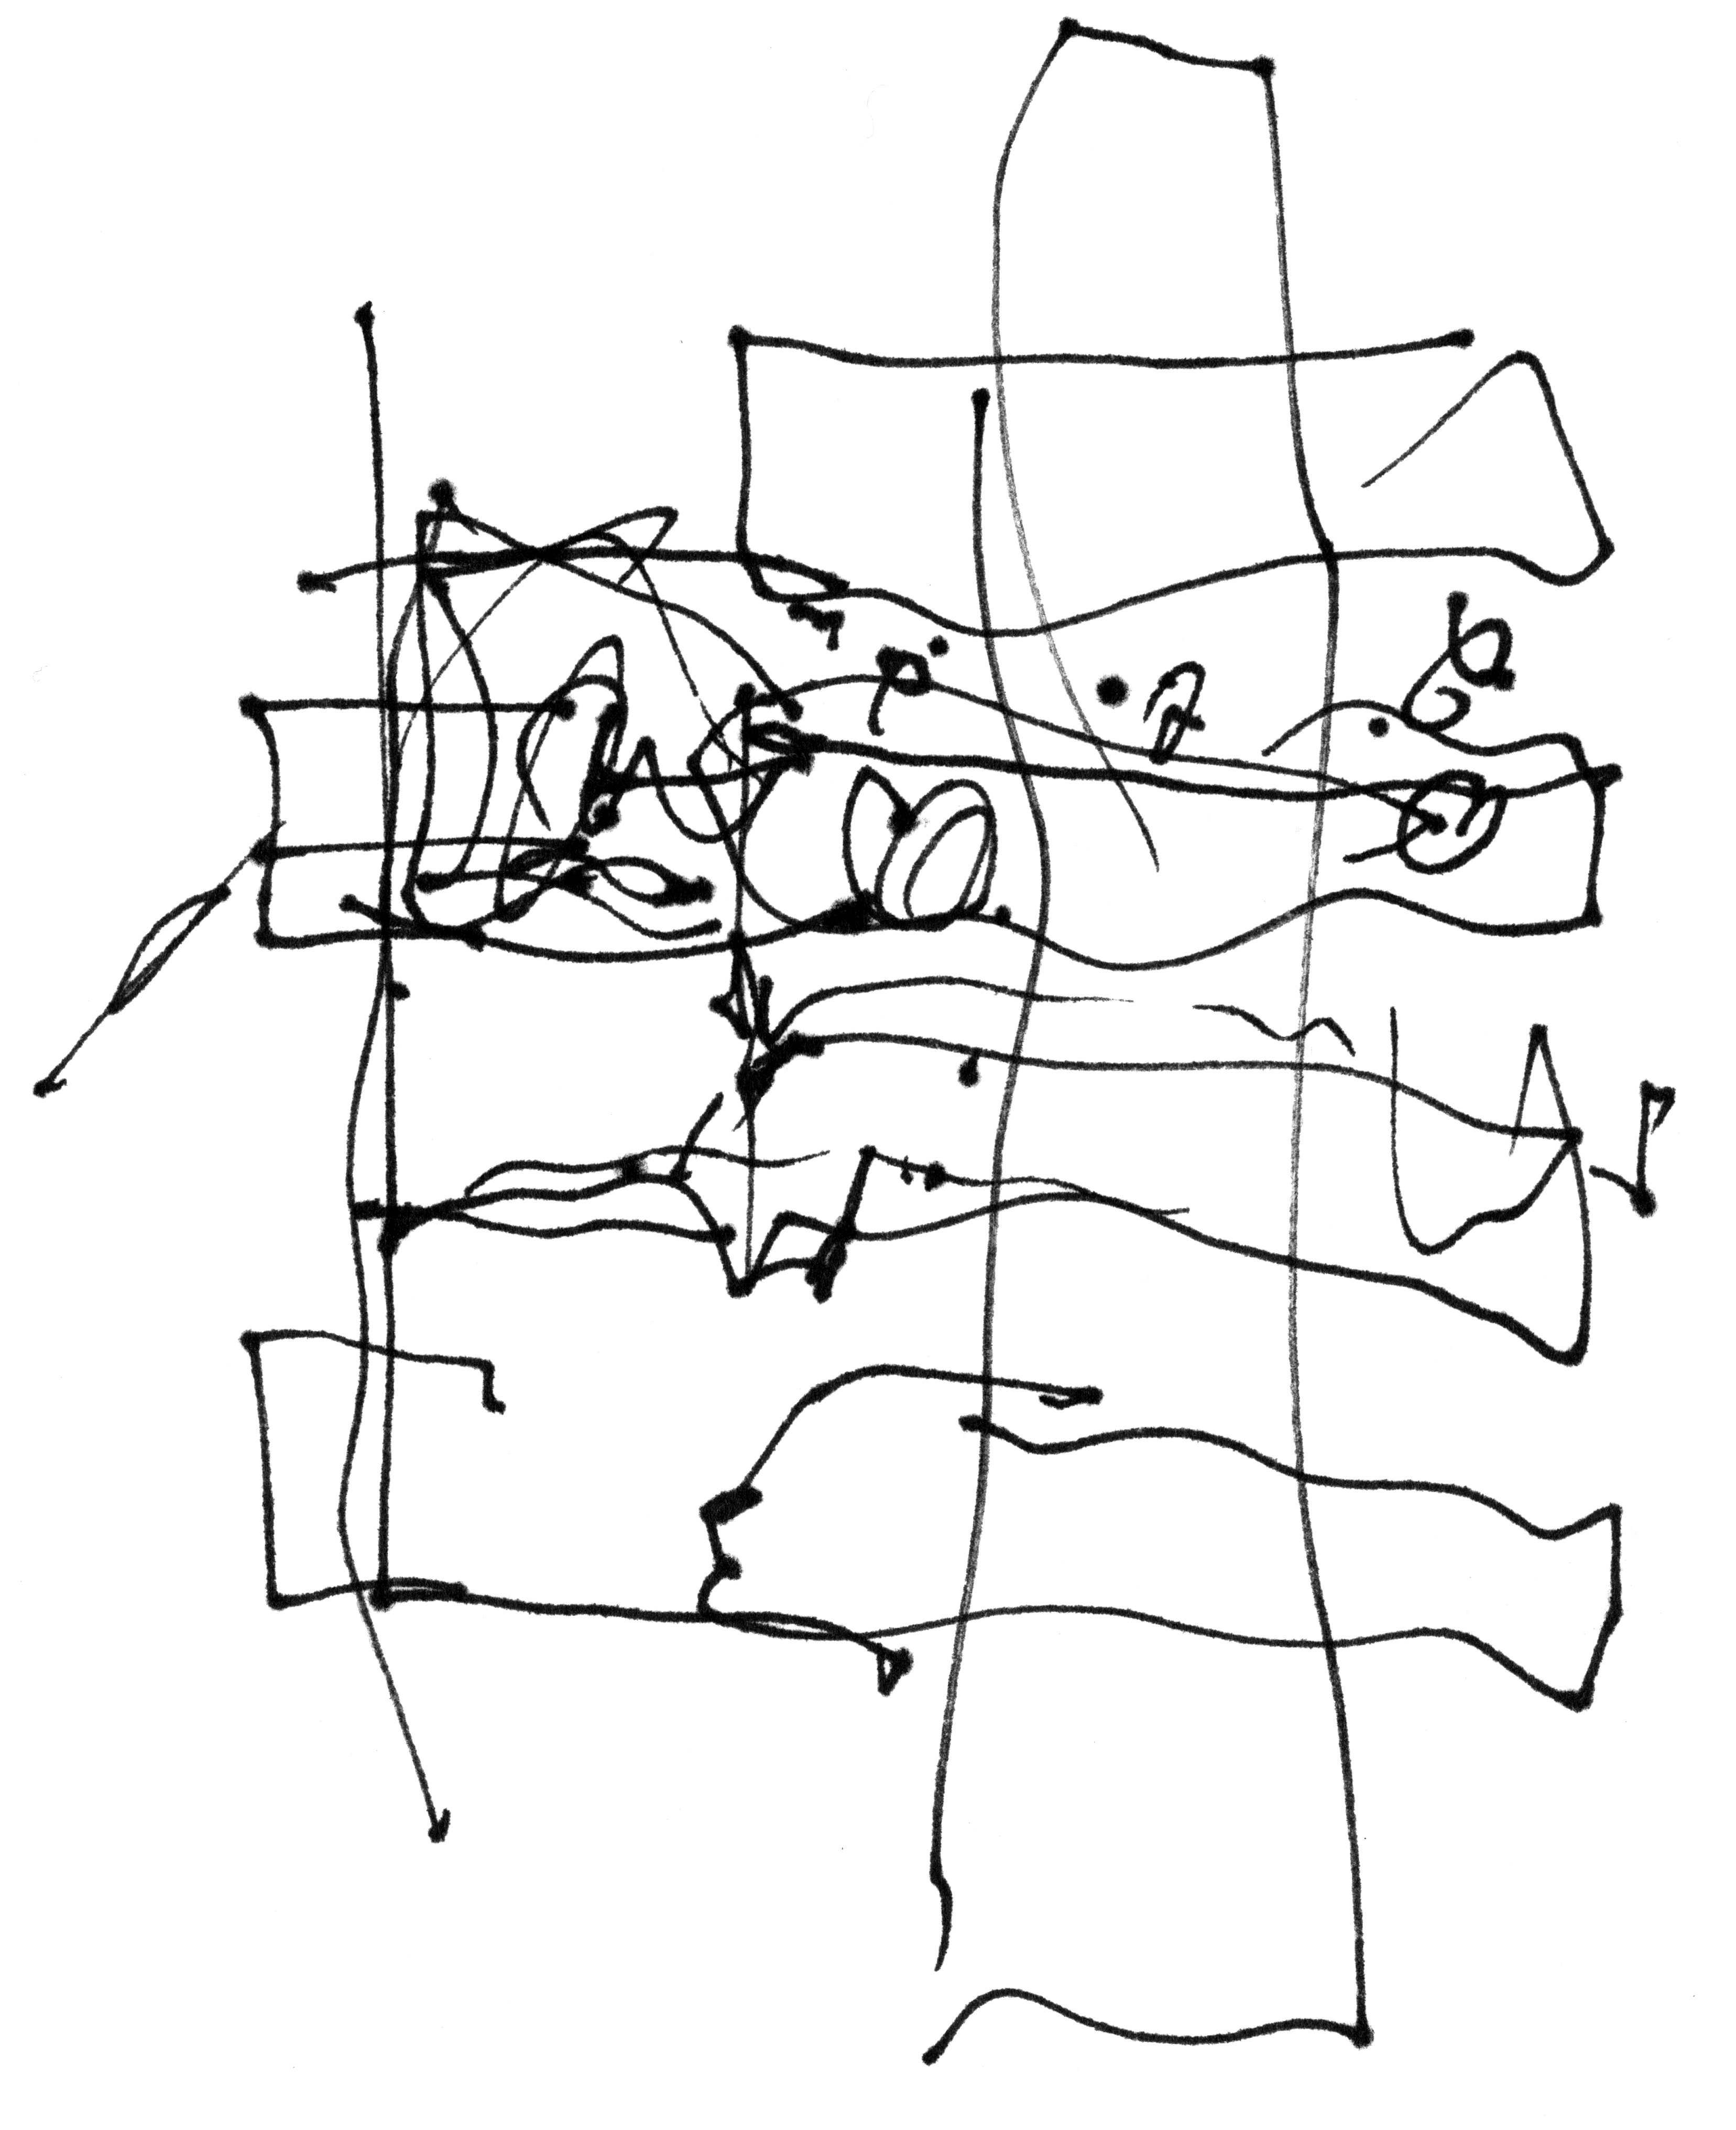 3313x4064 Frank Gehry Treehouse Sketch